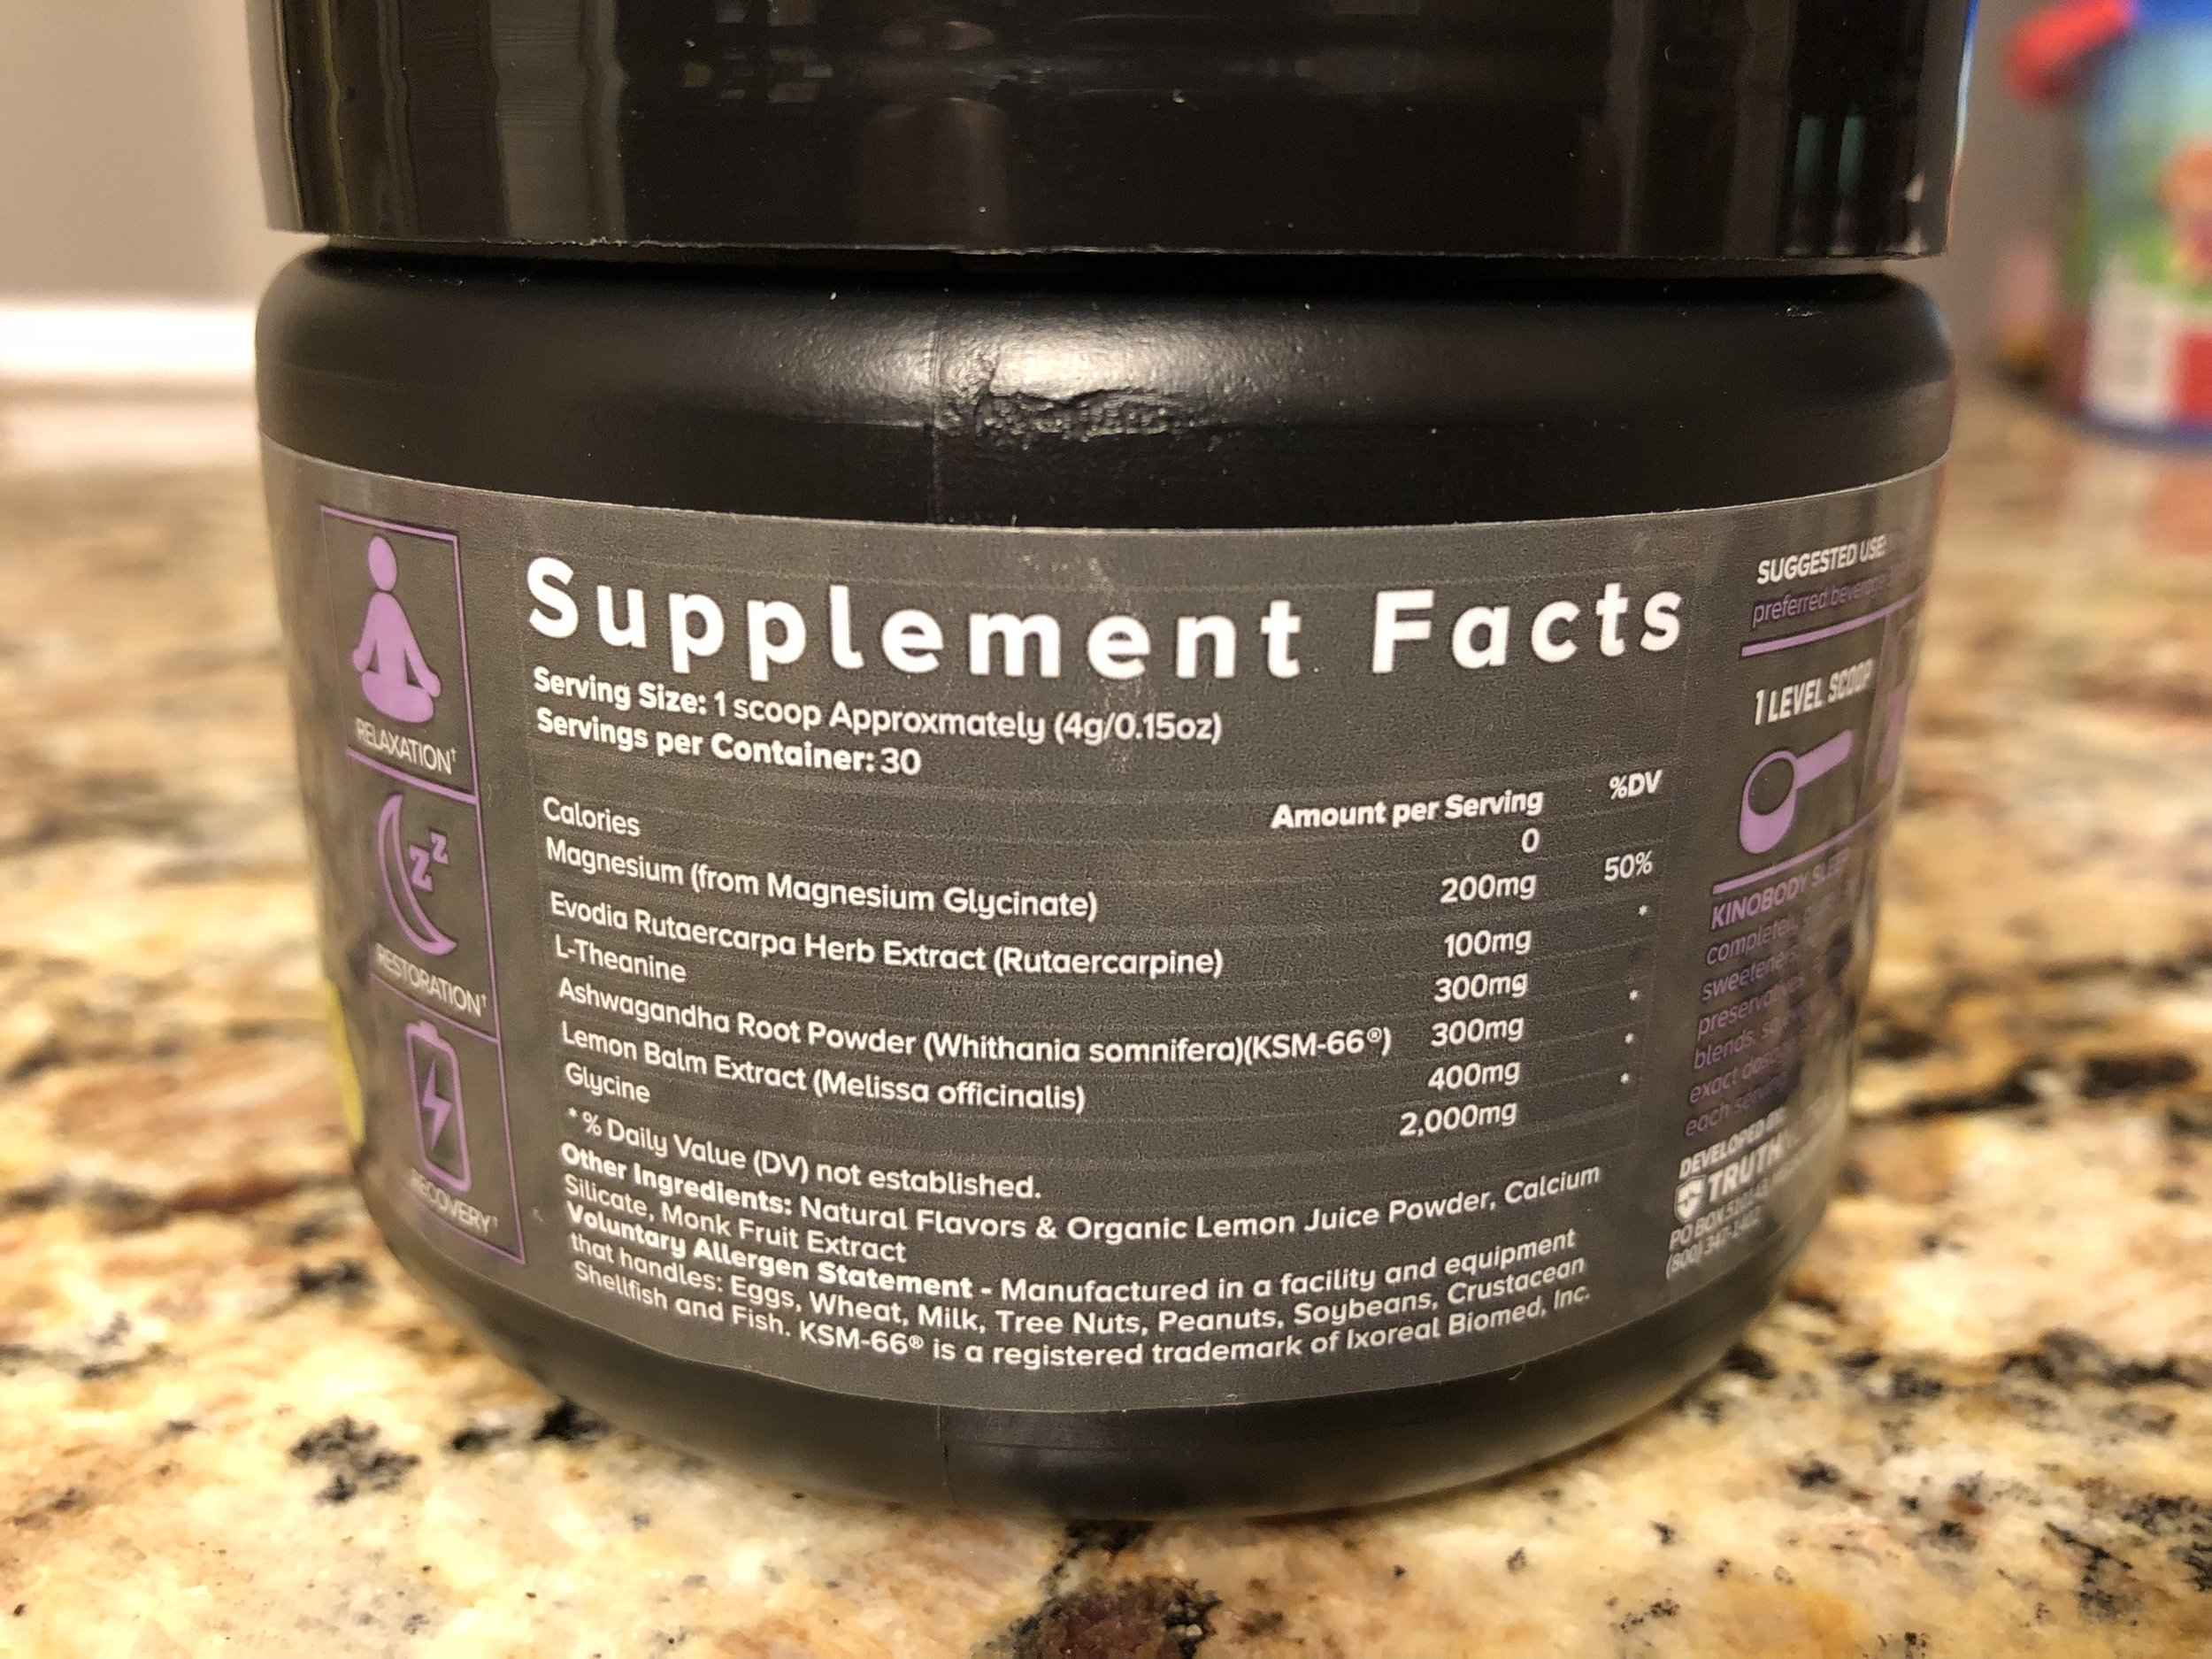 Kino Sleep Review: All-Natural Sleep Supplement Pros & Cons